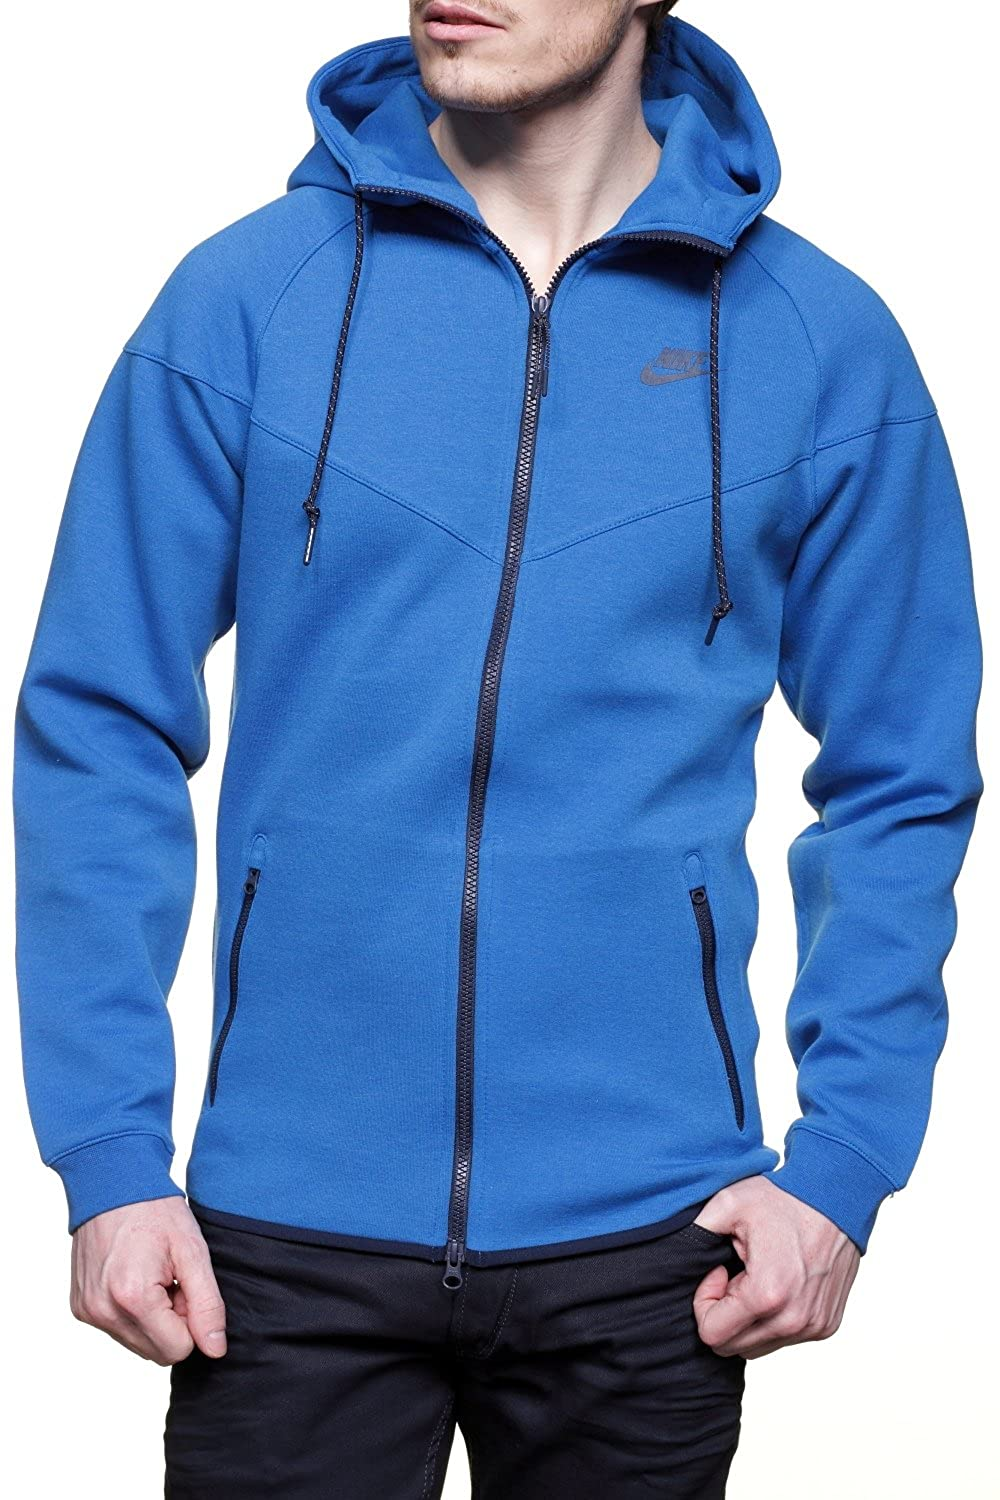 Nike Tech Fleece Windrunner-1M - Chaqueta para Hombre, Color ...